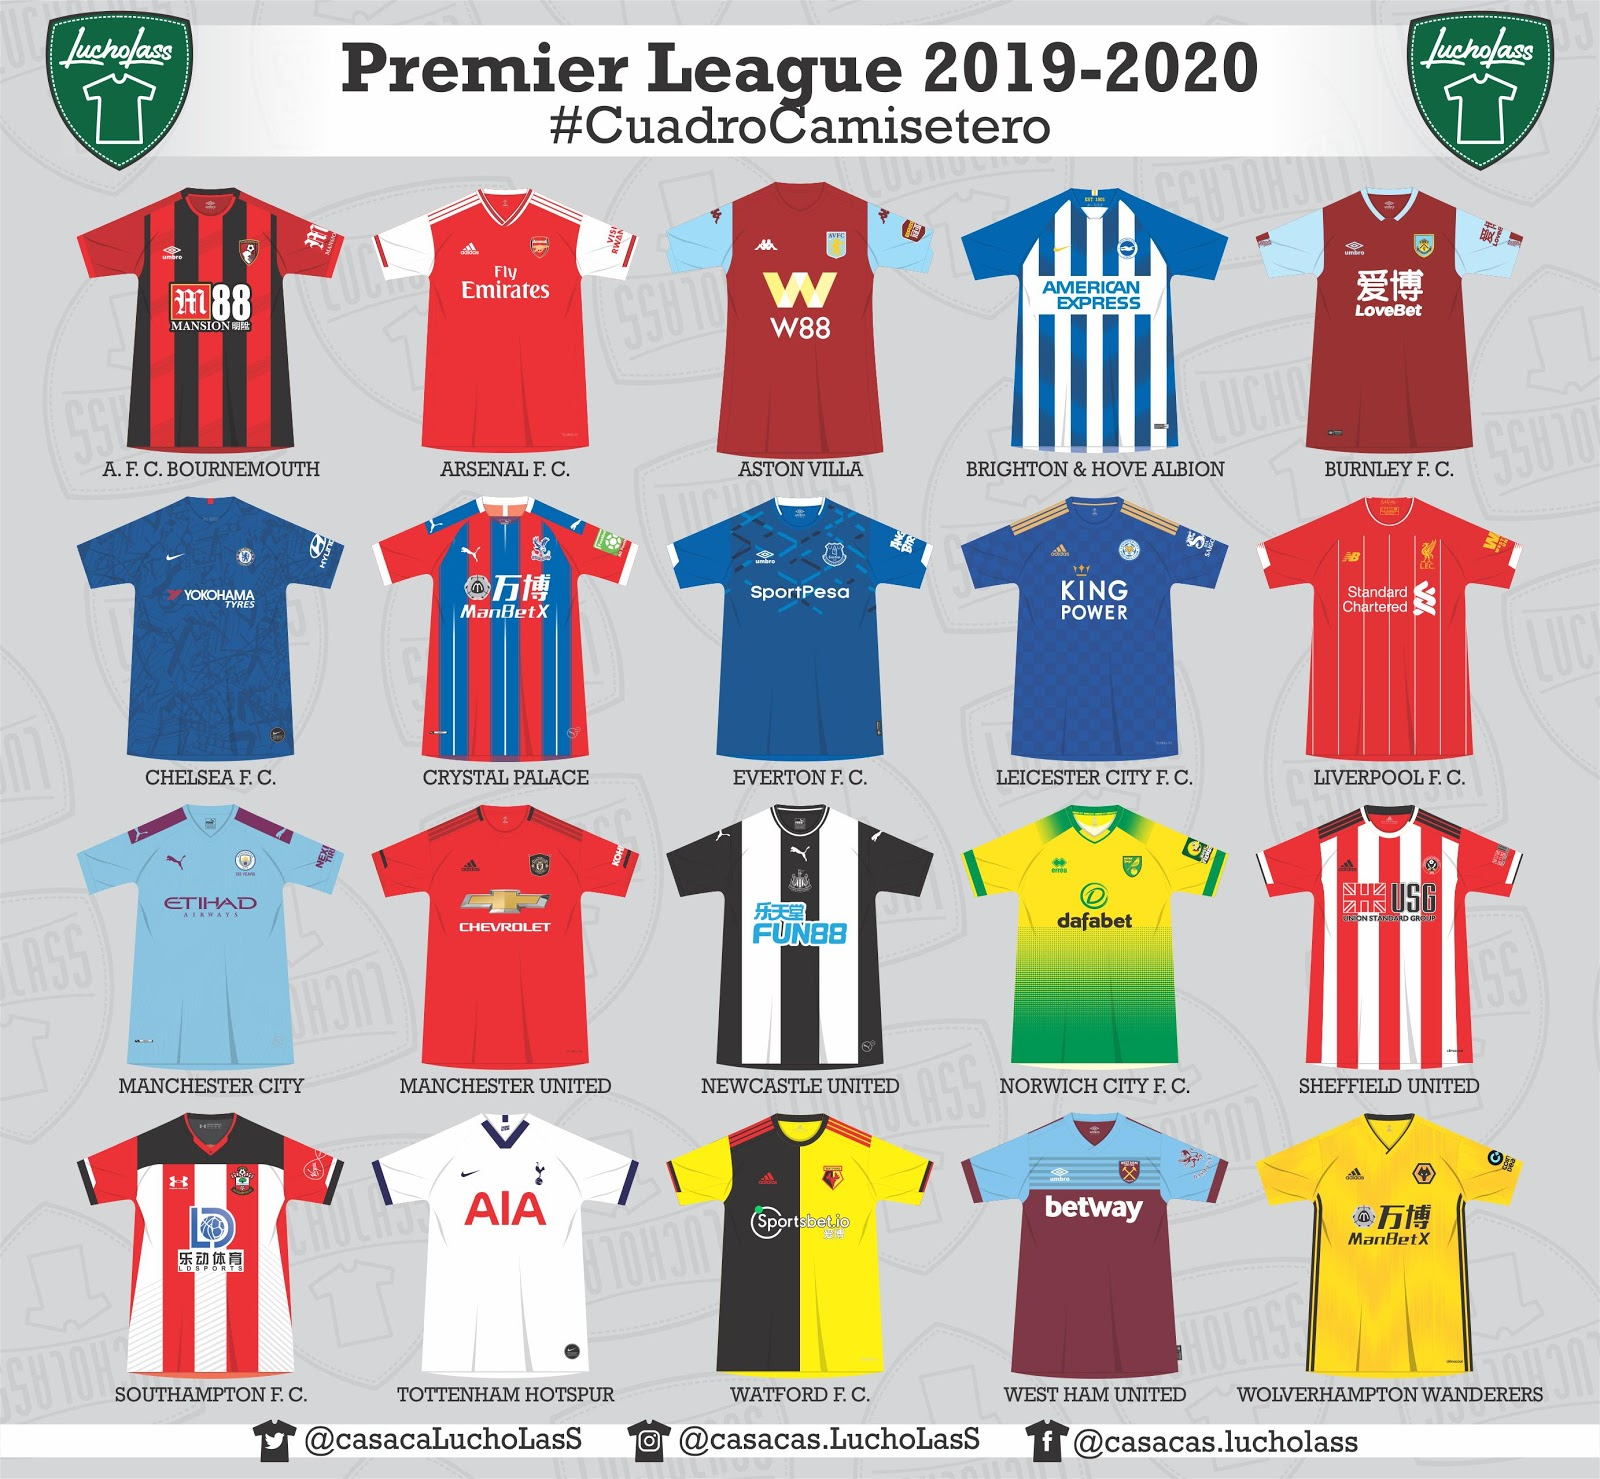 80e67c63d ... very easy to compare all the kits. Many away and third jerseys are yet  to be released, including those of Chelsea, Man City (3rd), Man Utd and  Arsenal